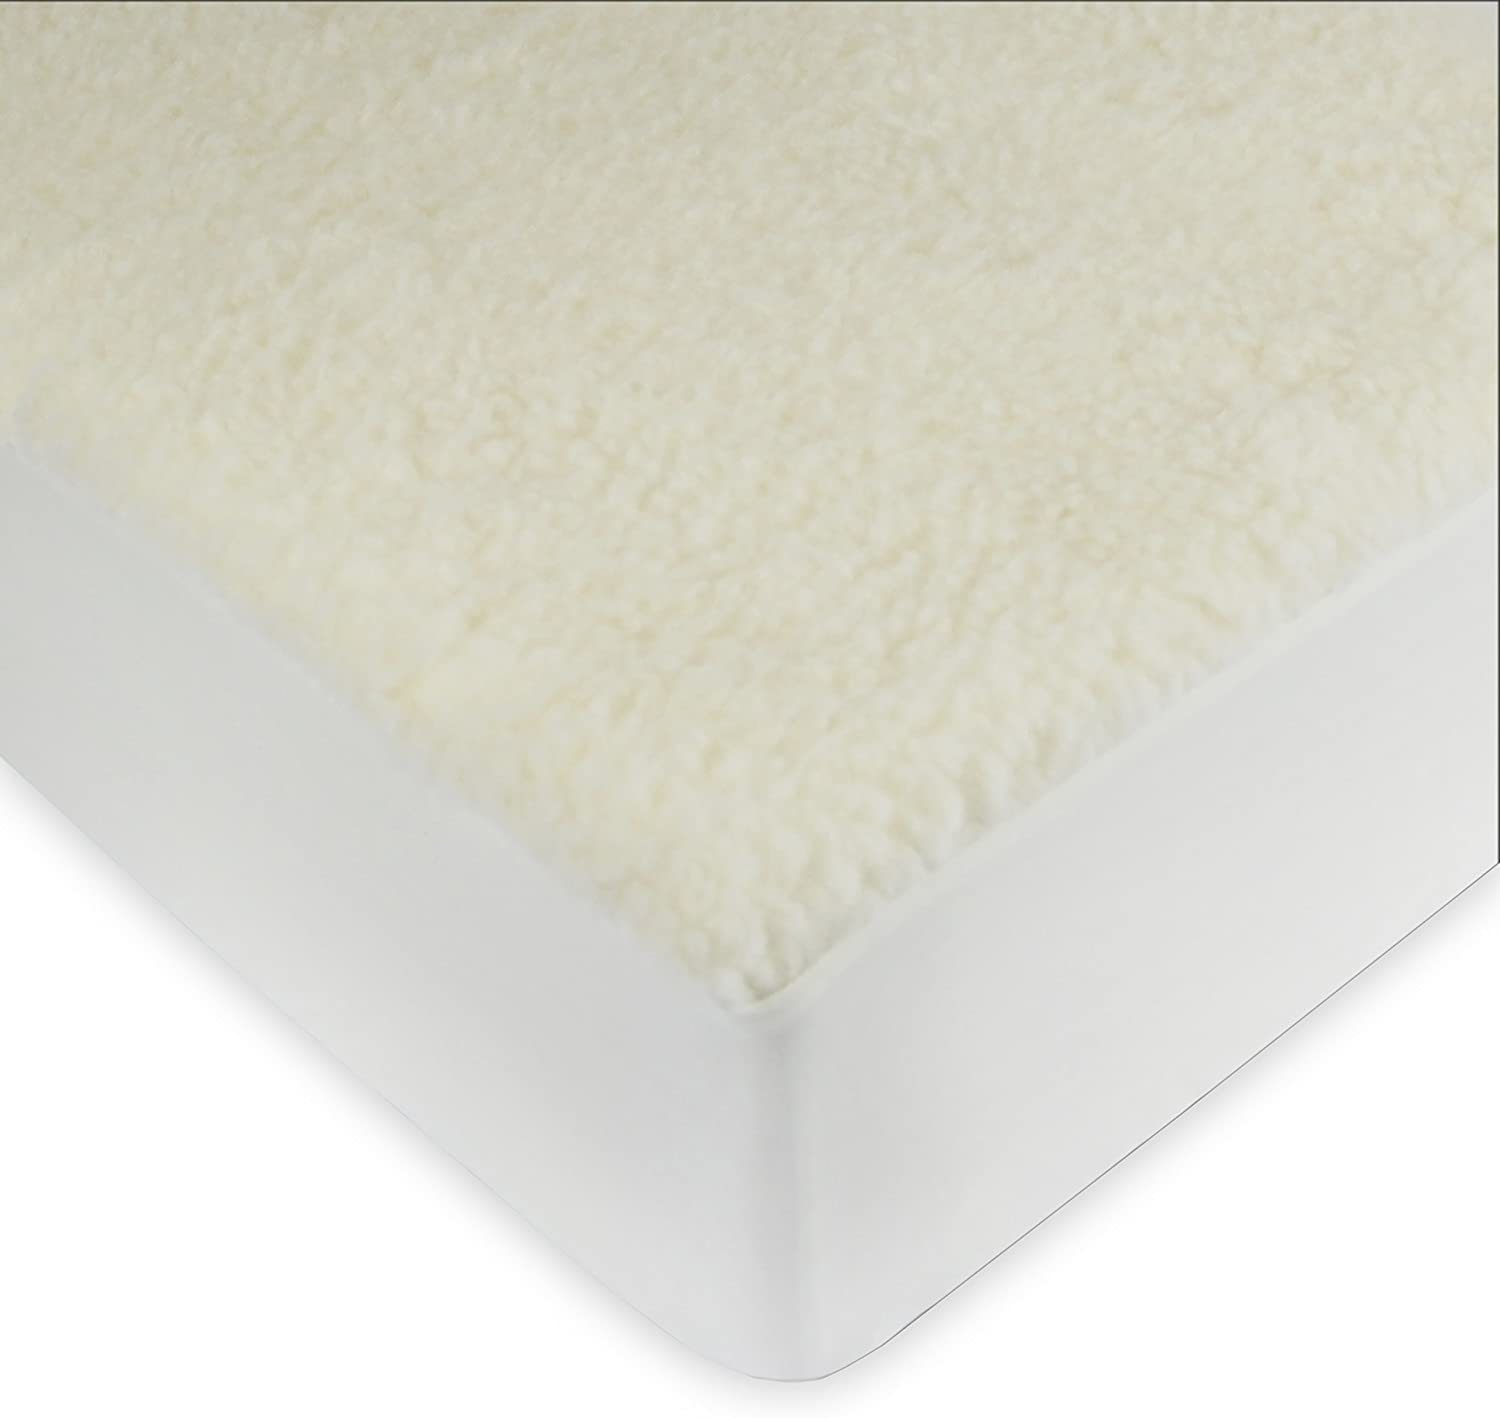 Century Home Signature Collection Woolmark Certified Pure Wool Fleece Mattress Pad, Full,